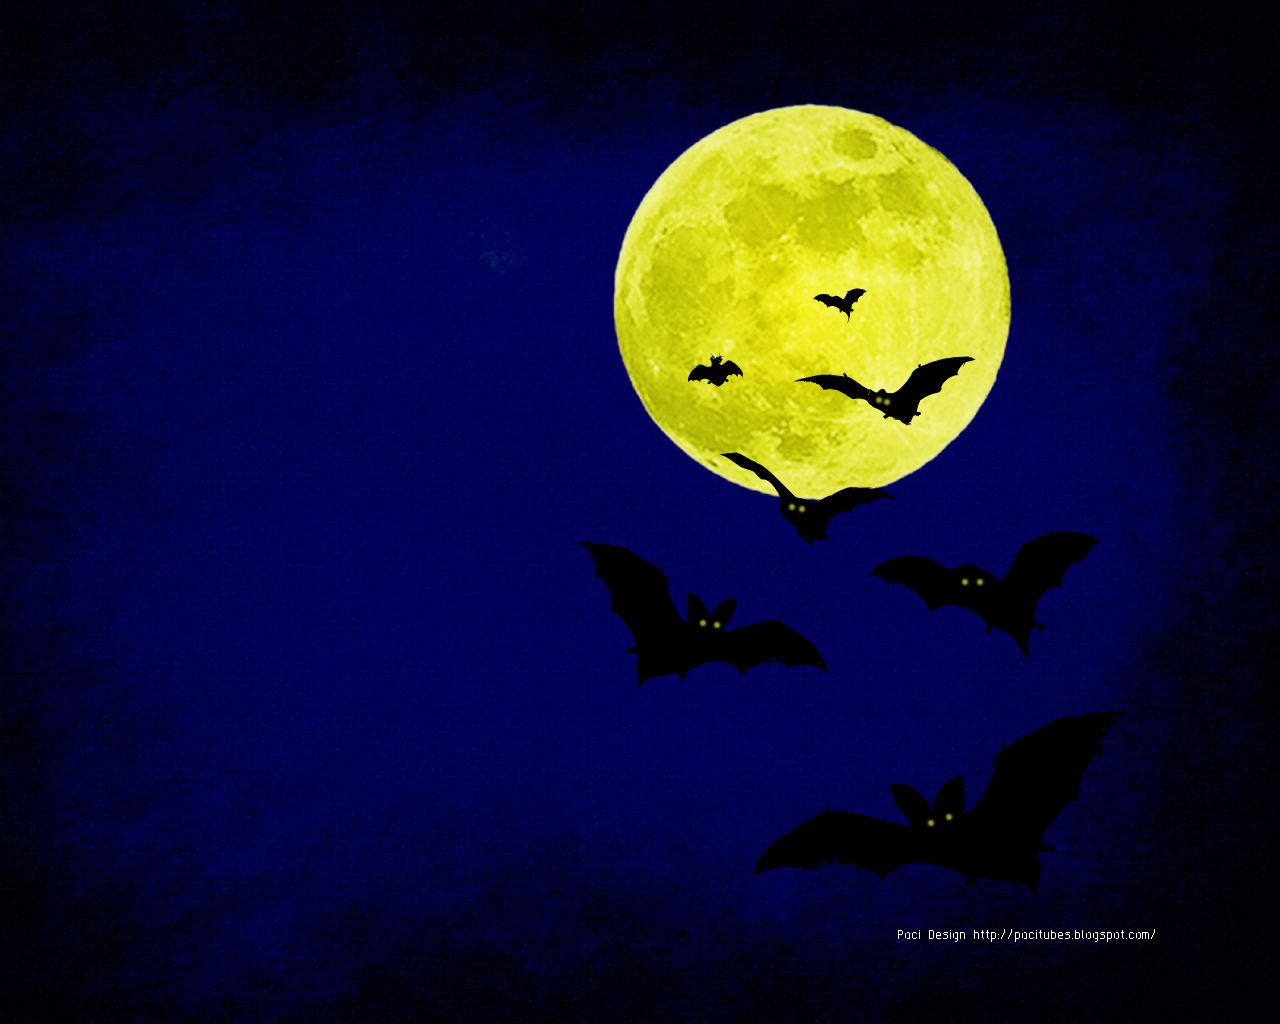 Cool Halloween Wallpapers and Halloween Icons for Download 1280x1024